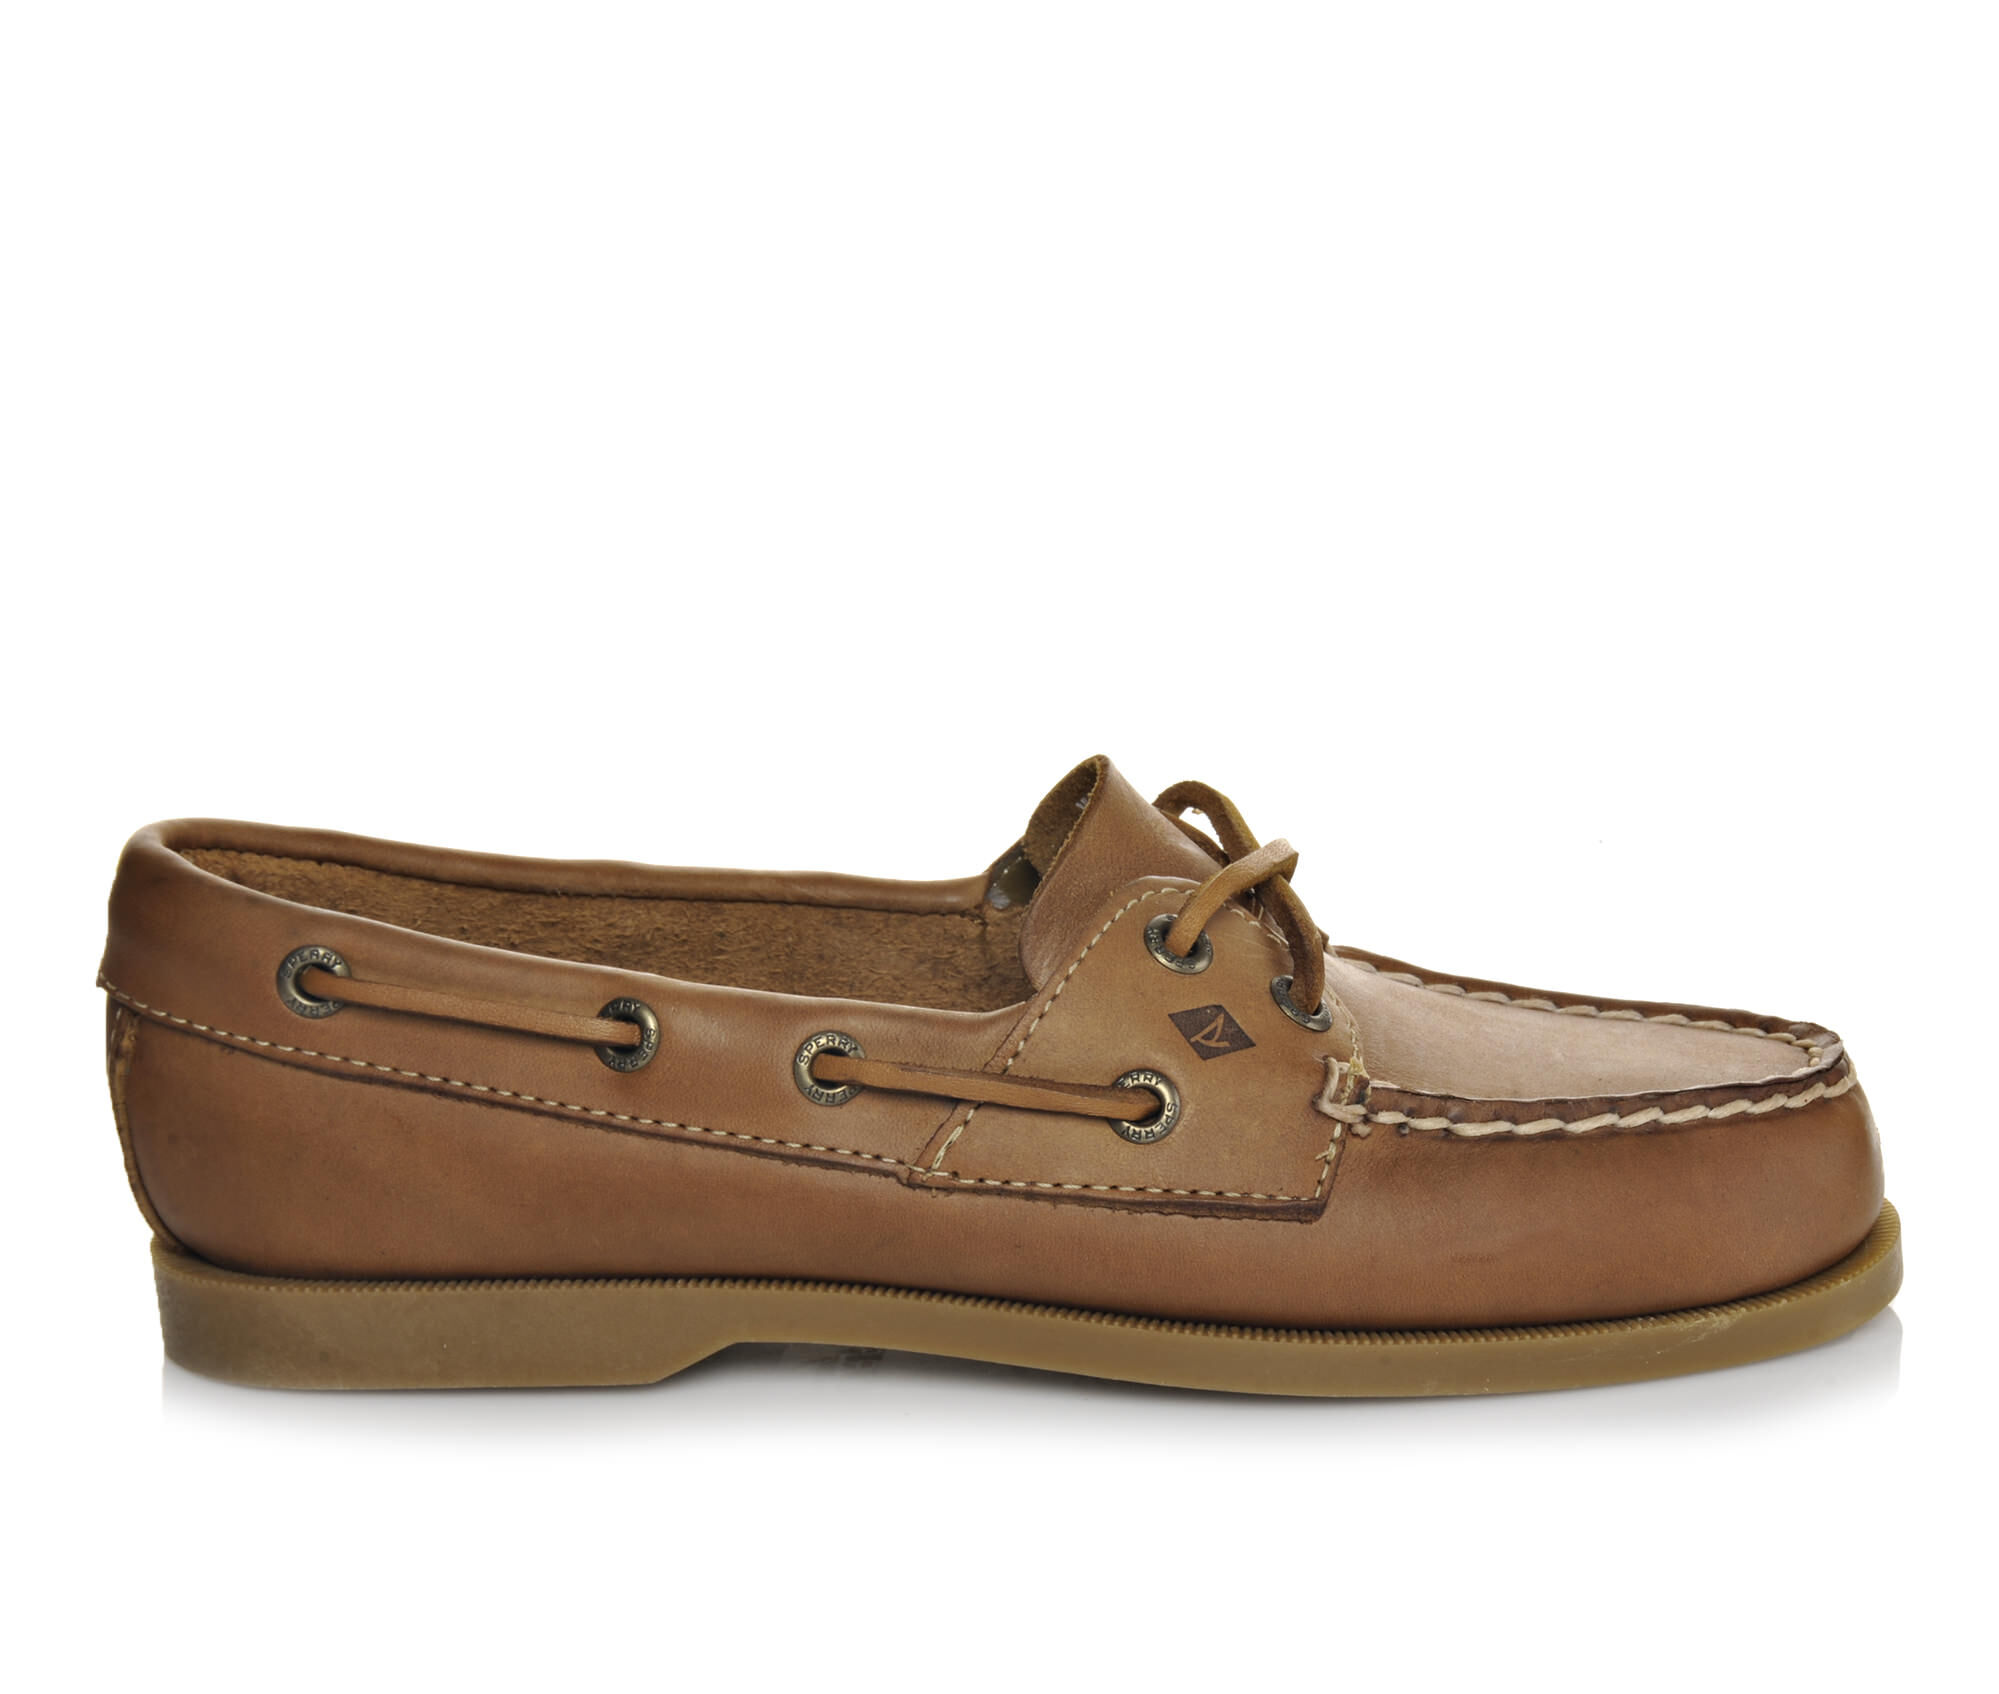 Women's Sperry Rudder Boat Shoes outlet cheapest price 59PBp